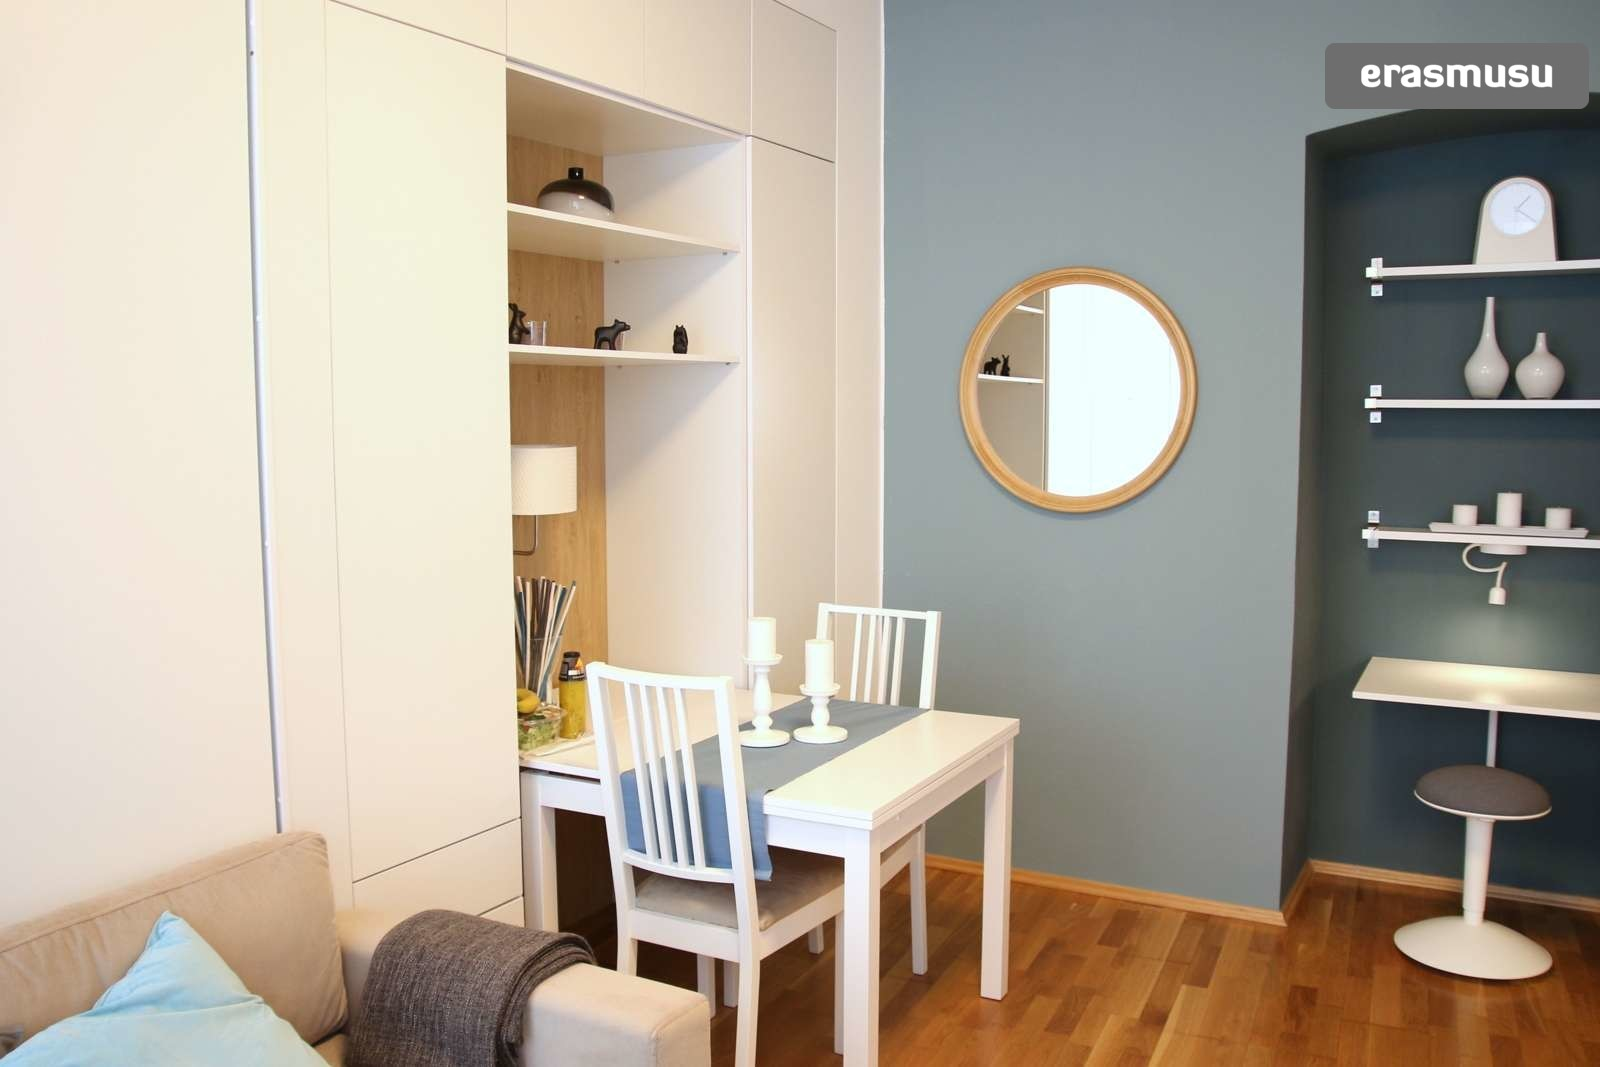 lovely-studio-apartment-rent-wahring-a60f0e1fc7f3aad4a9037daa315